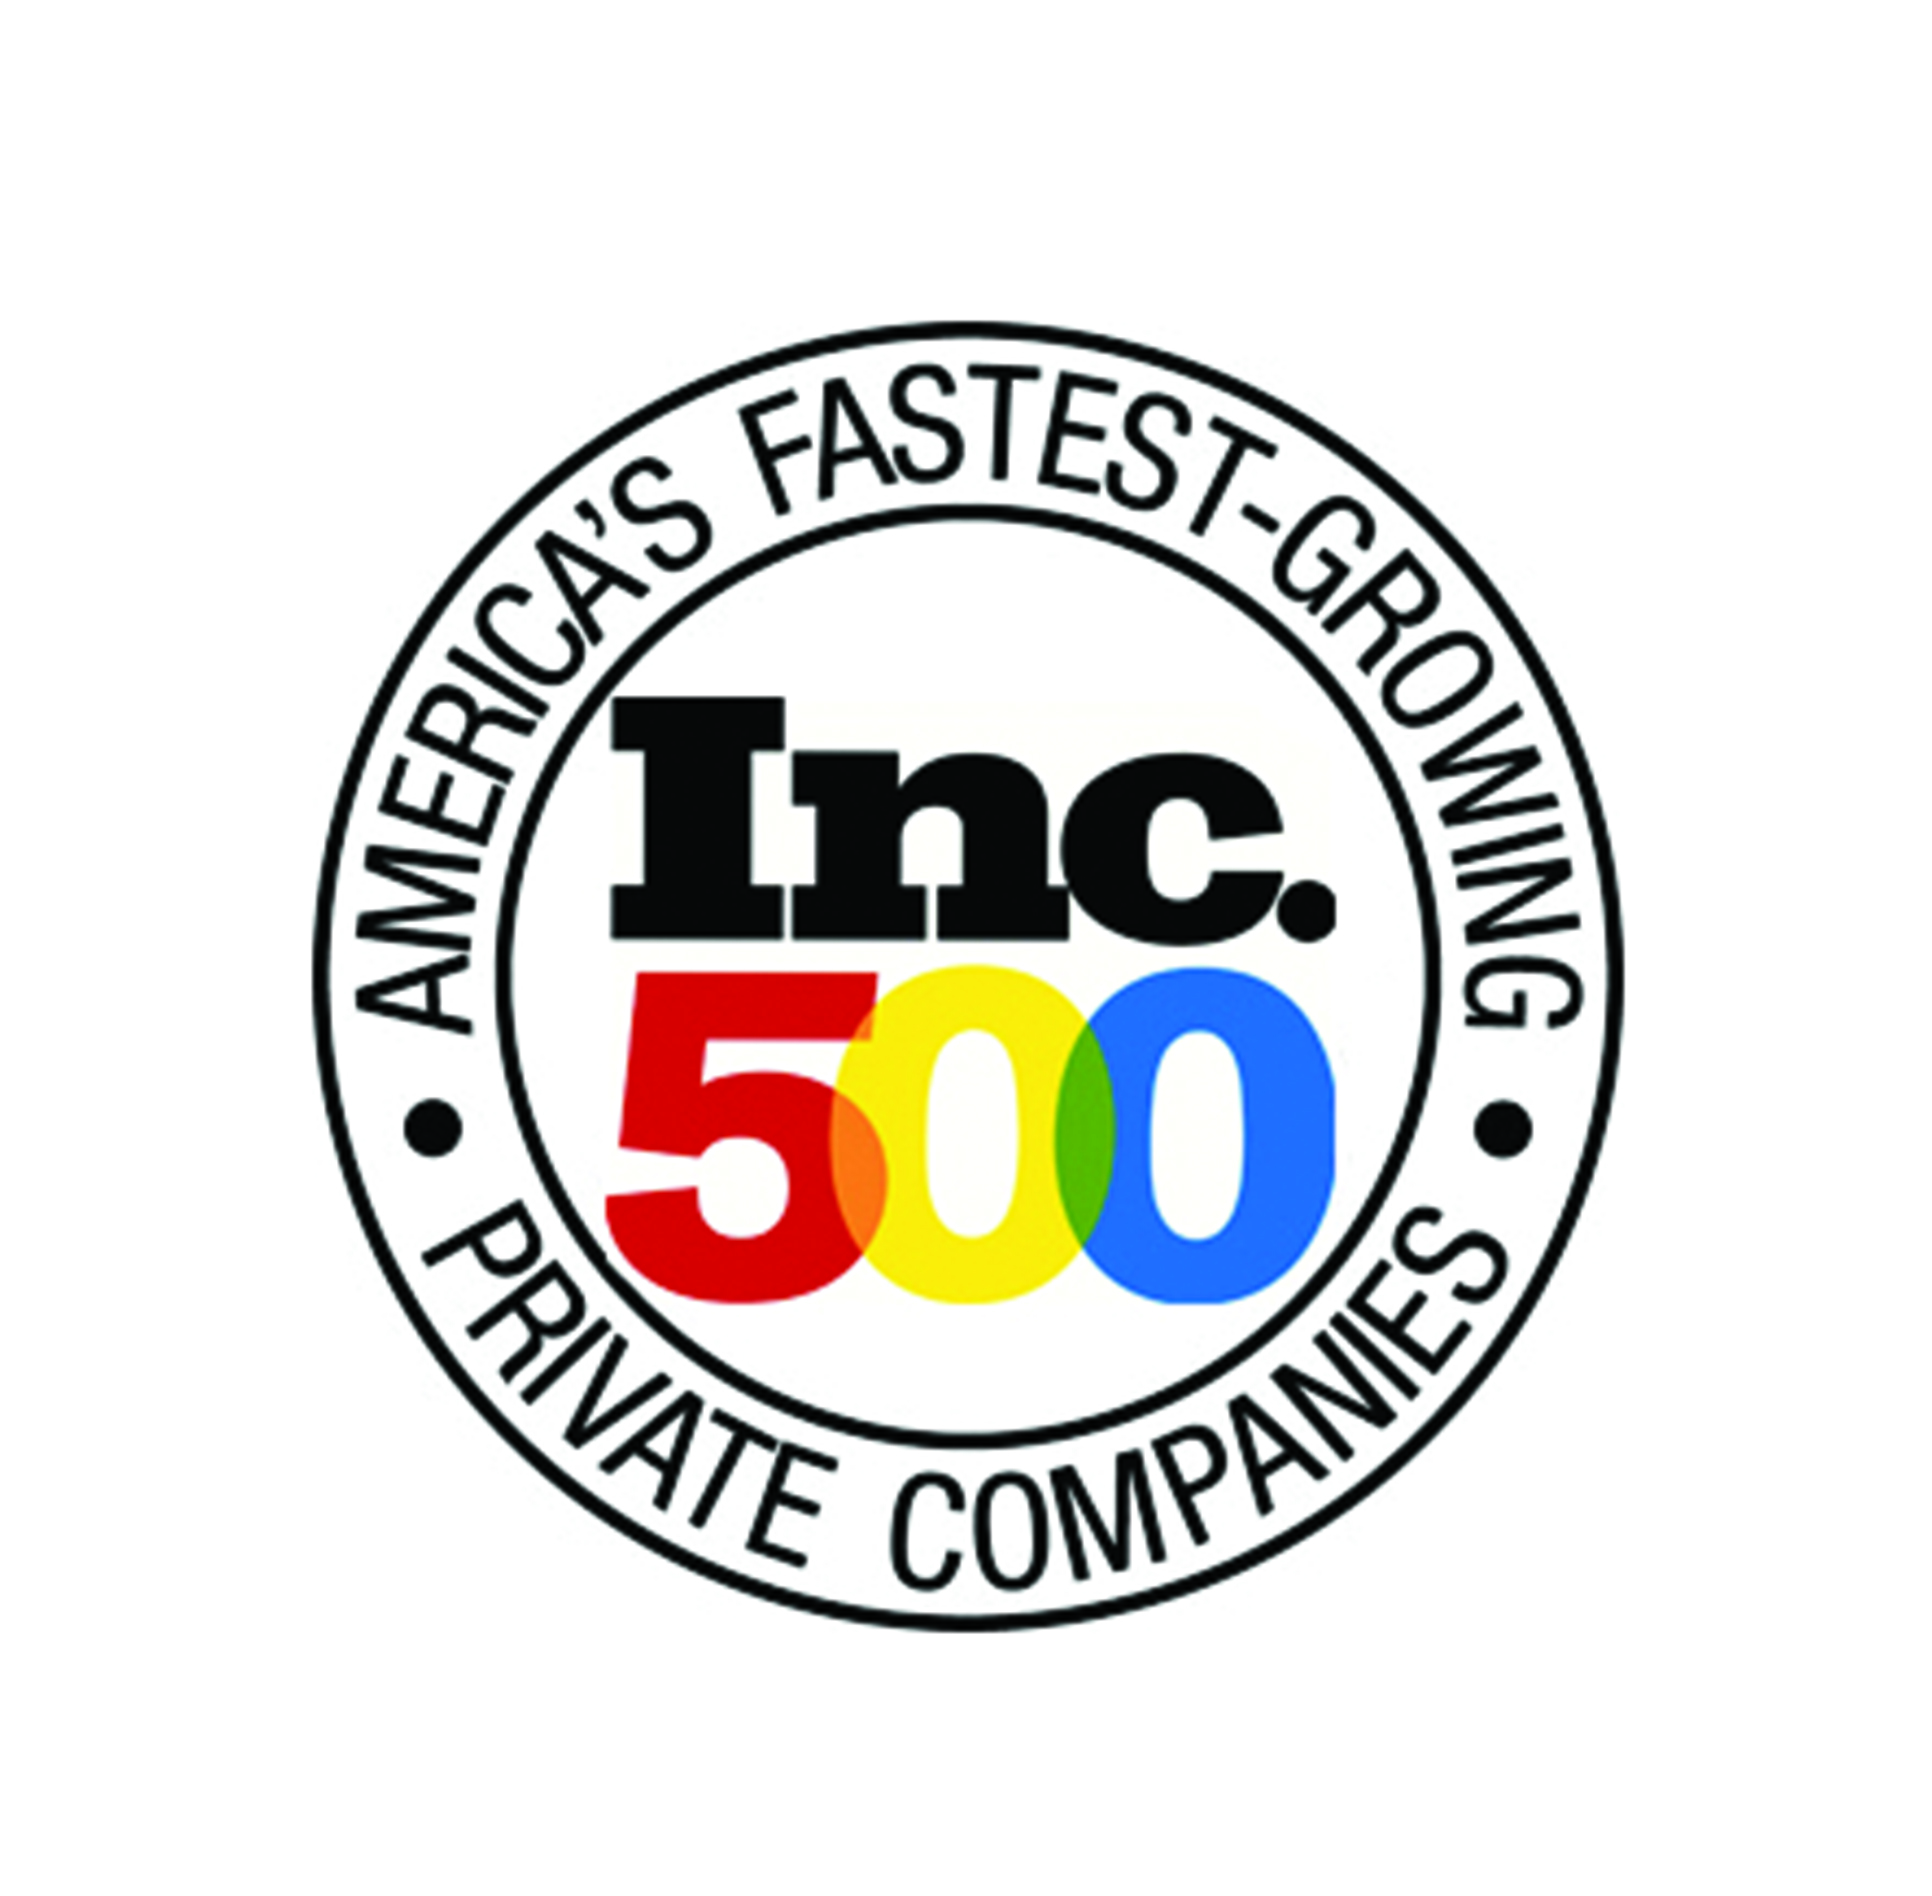 Inc-500-Fastest-Growing-Company.jpg